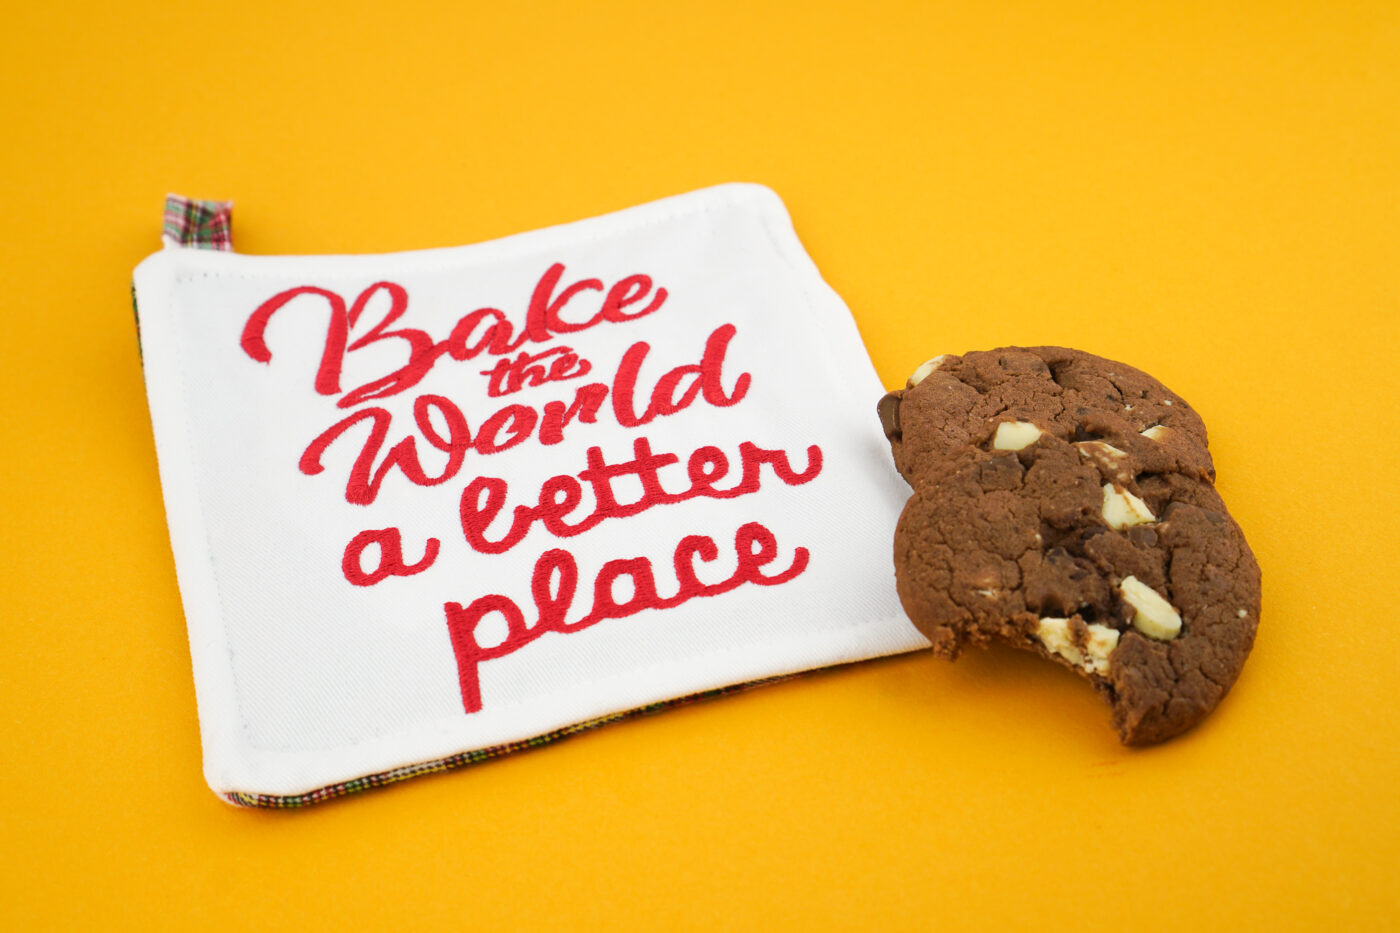 Stickdatei Weihnachten Backen Schürze stickdatei küche Schriftzug »bake the world a better place« stickdatei backen bake world better place 03 1400x933